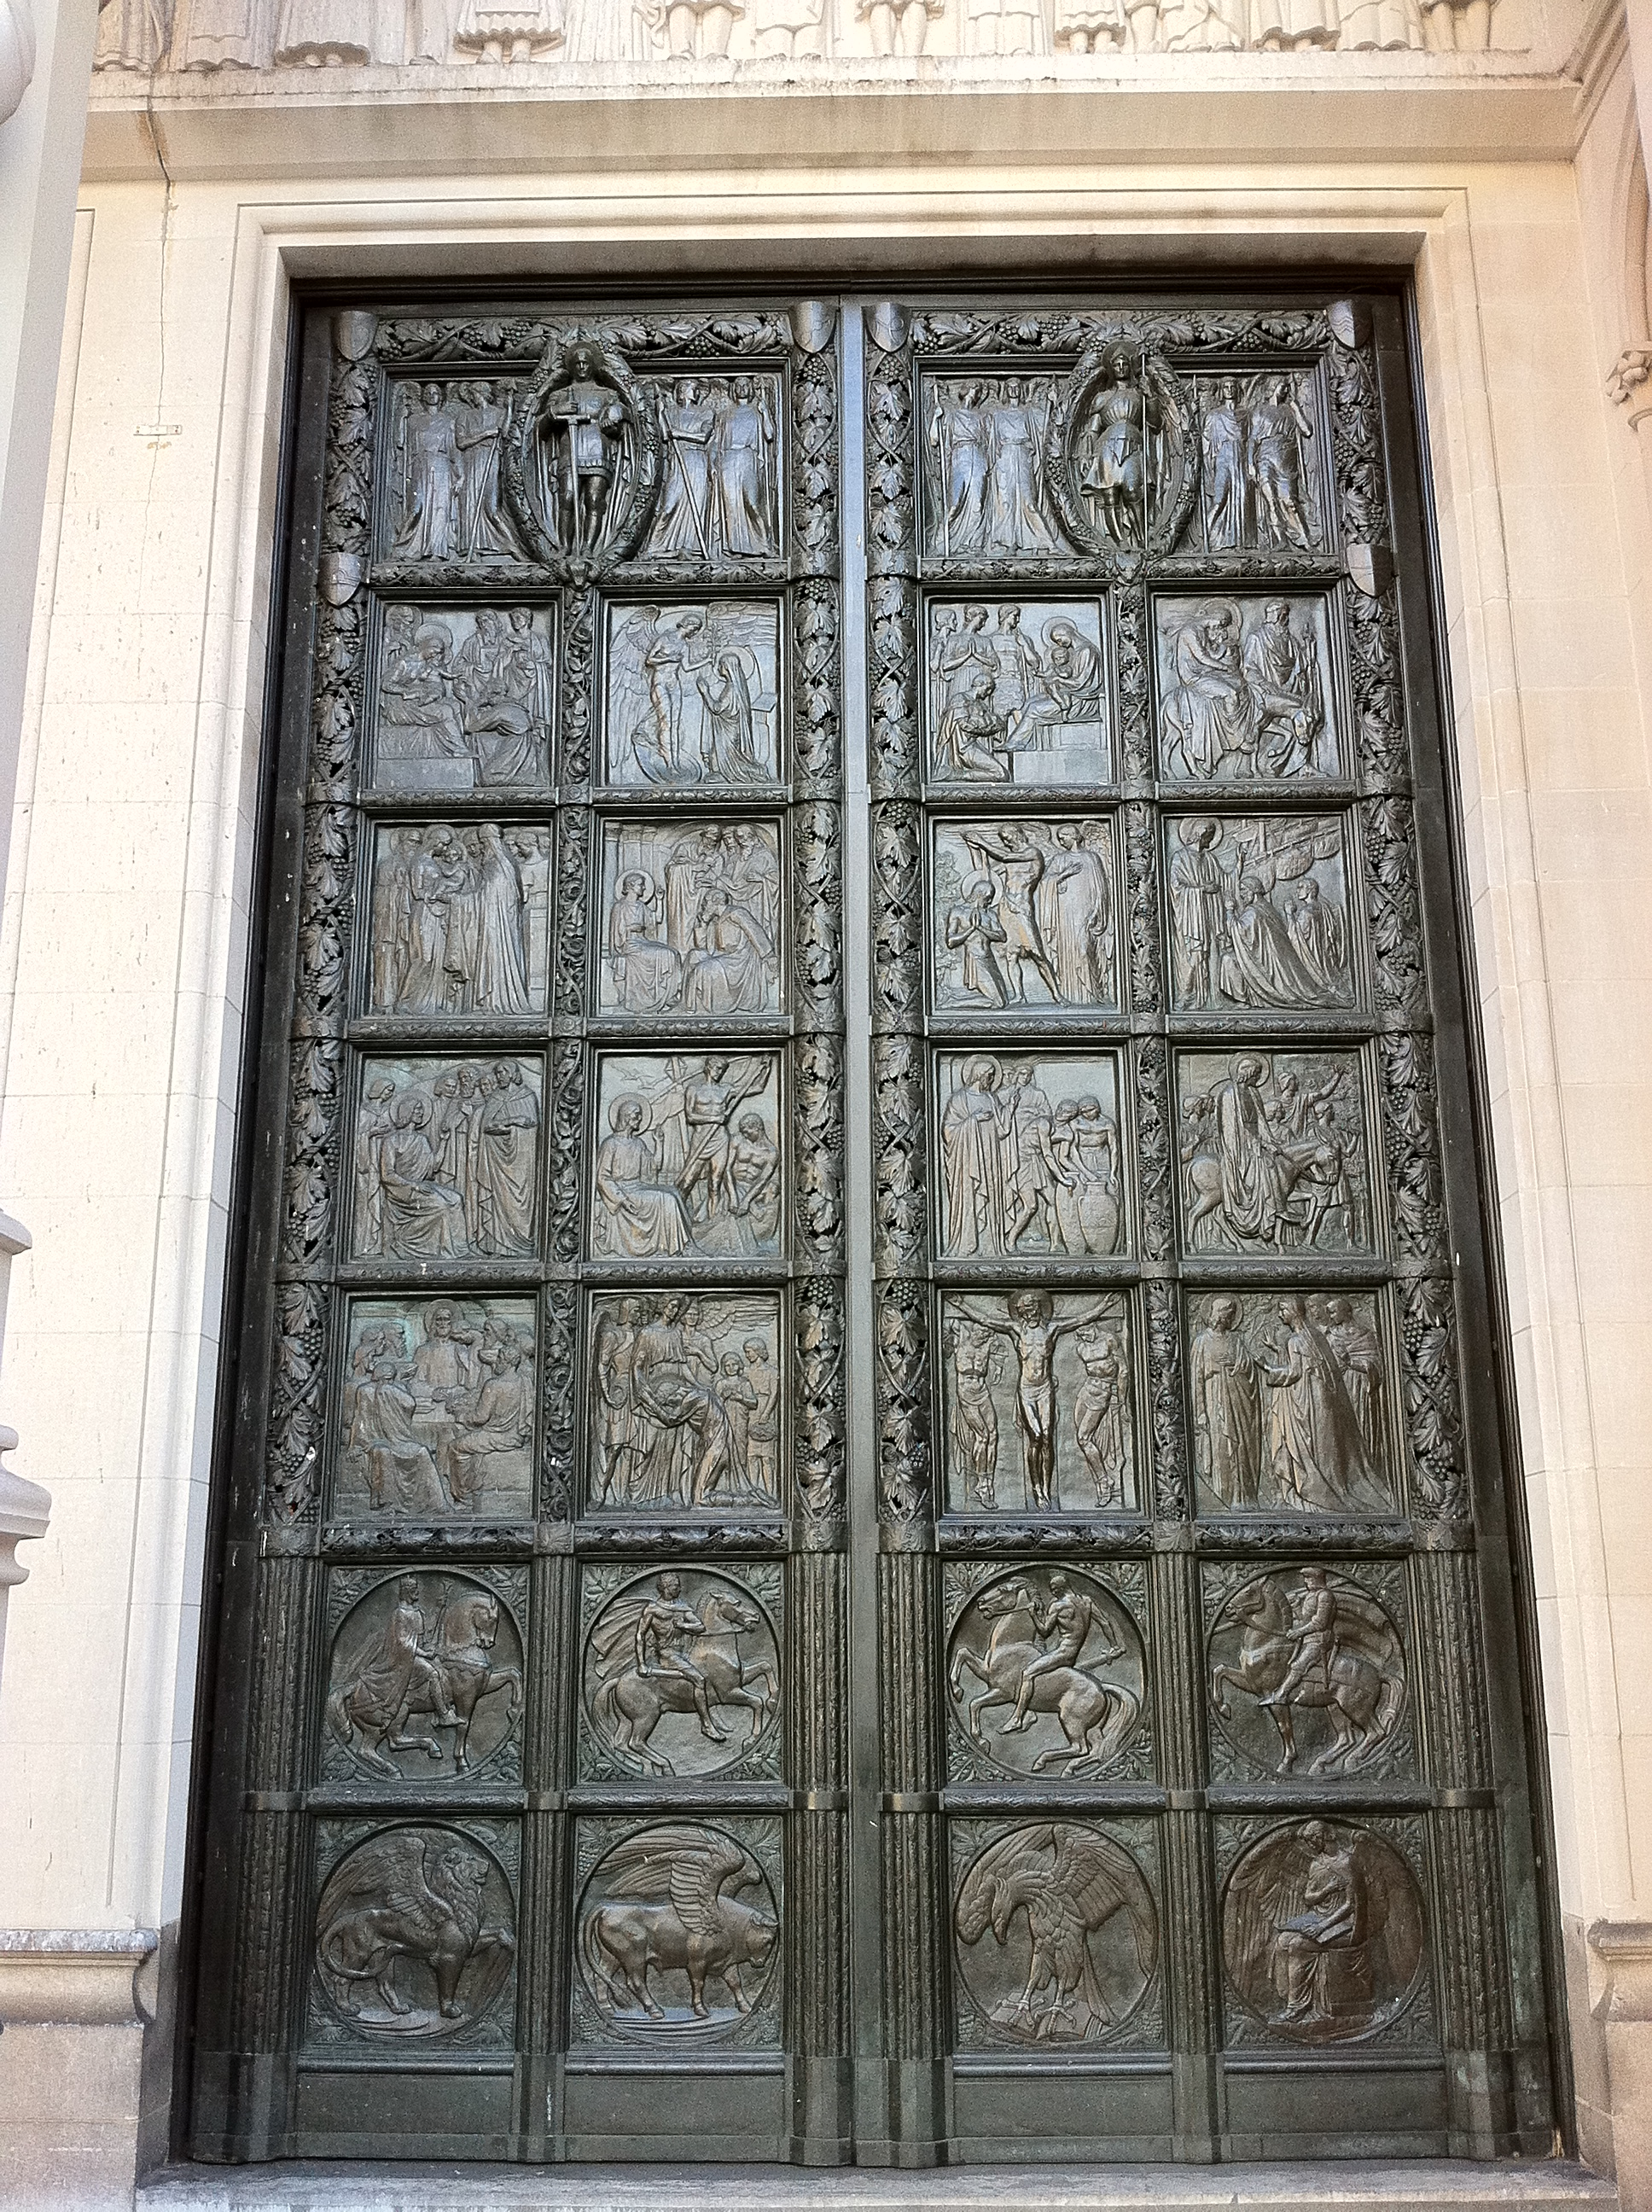 http://upload.wikimedia.org/wikipedia/commons/4/4a/Right_hand_bronze_door_at_the_Cathedral_of_St_John_the_Divine%2C_New_York.jpg